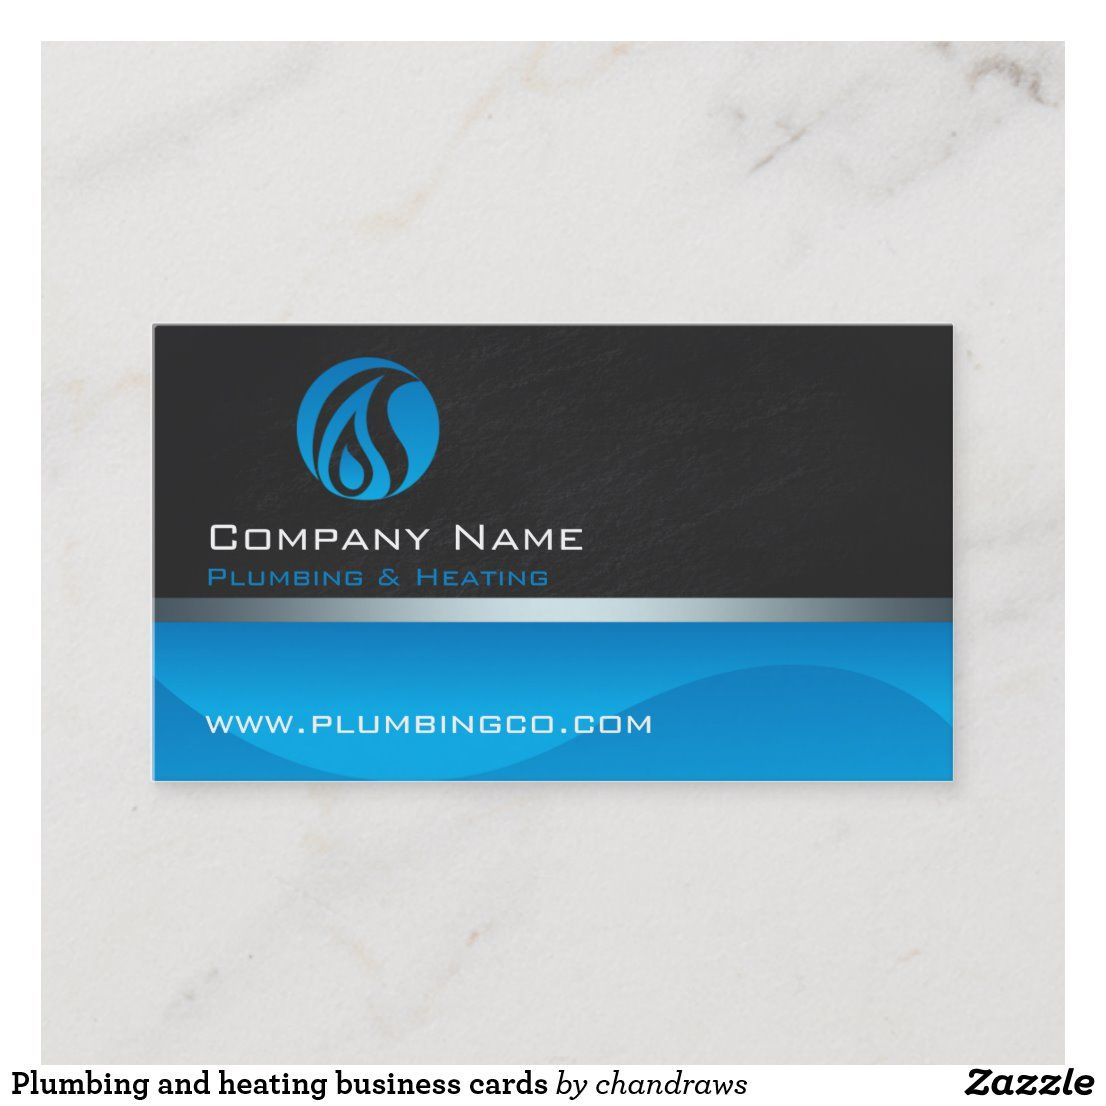 Plumbing And Heating Business Cards Zazzle Com In 2021 Business Cards Stylish Business Cards Plumbing